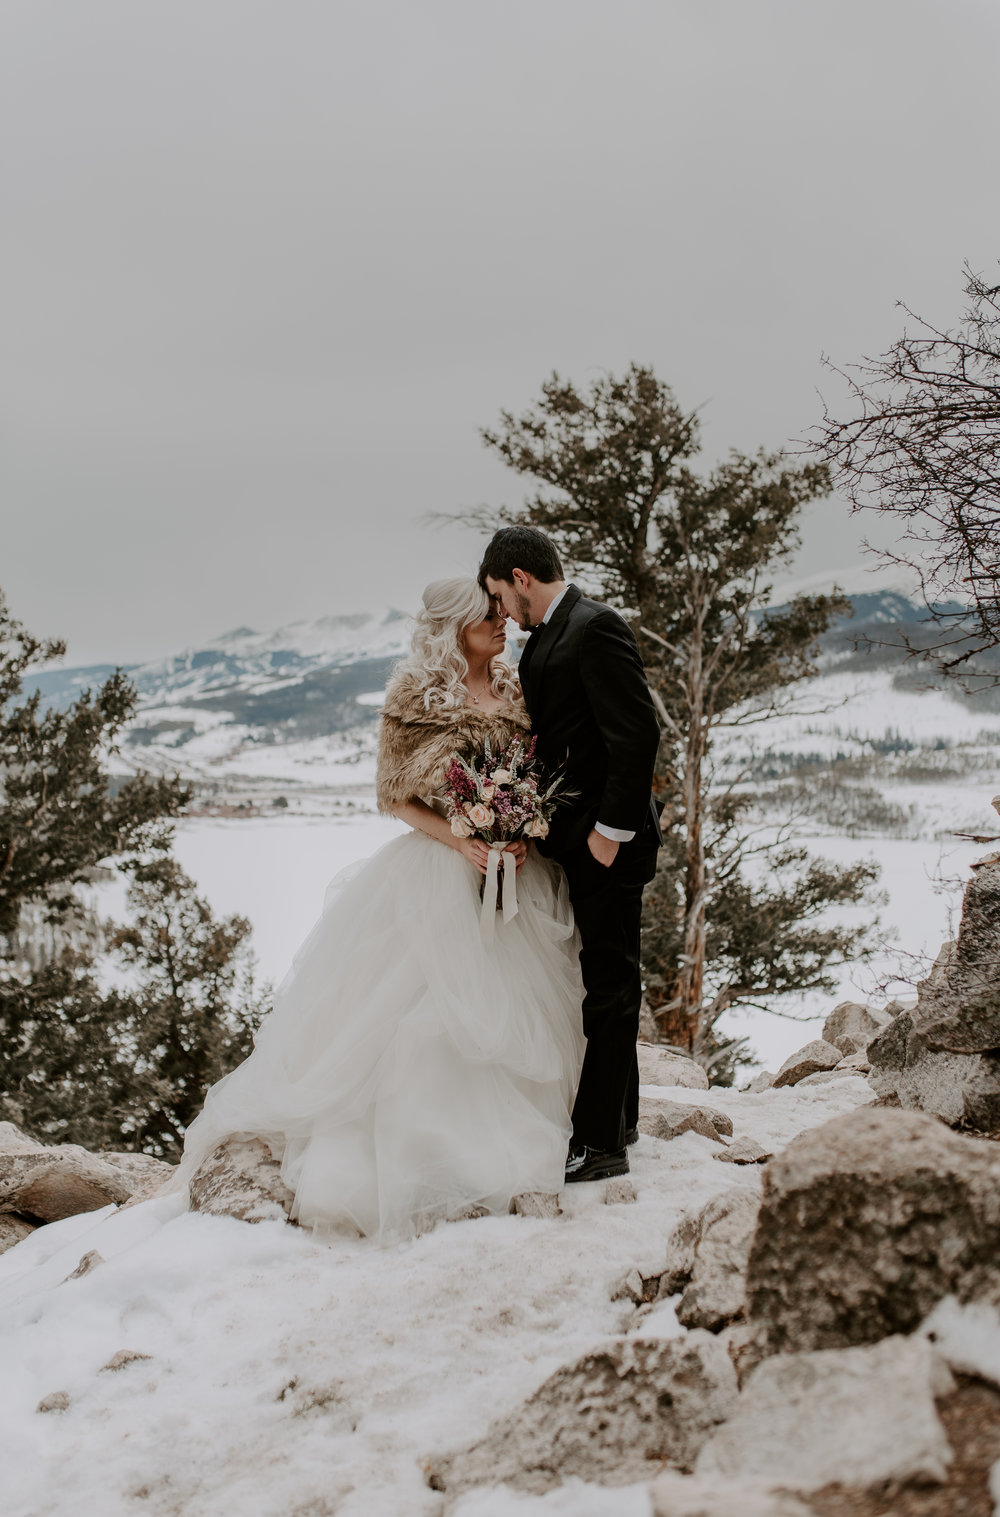 Winter elopement at Sapphire Point. Colorado wedding photographer.